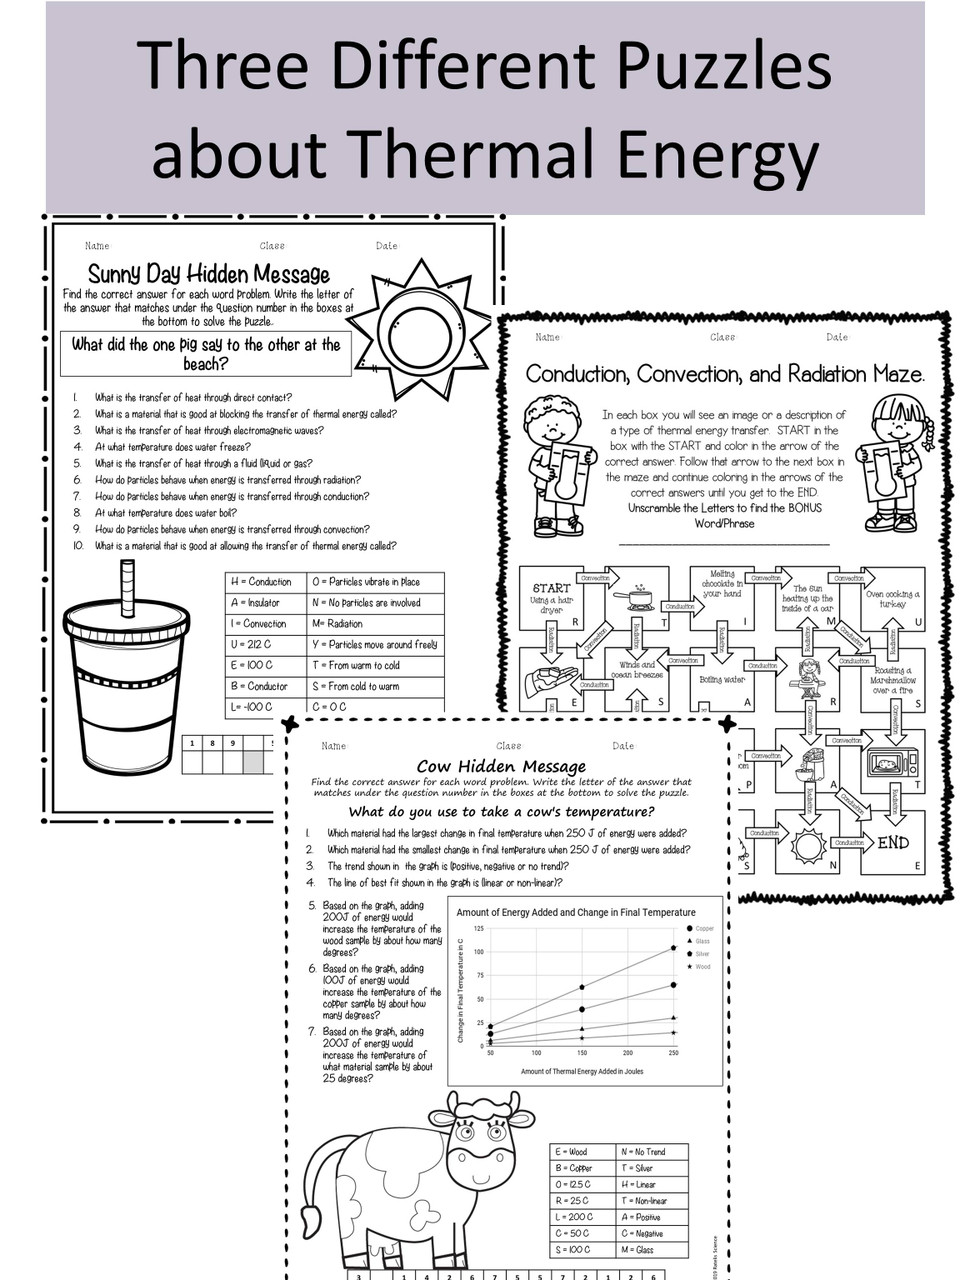 Thermal Energy Review Puzzles NGSS MS-PS-3-3 [ 1280 x 975 Pixel ]